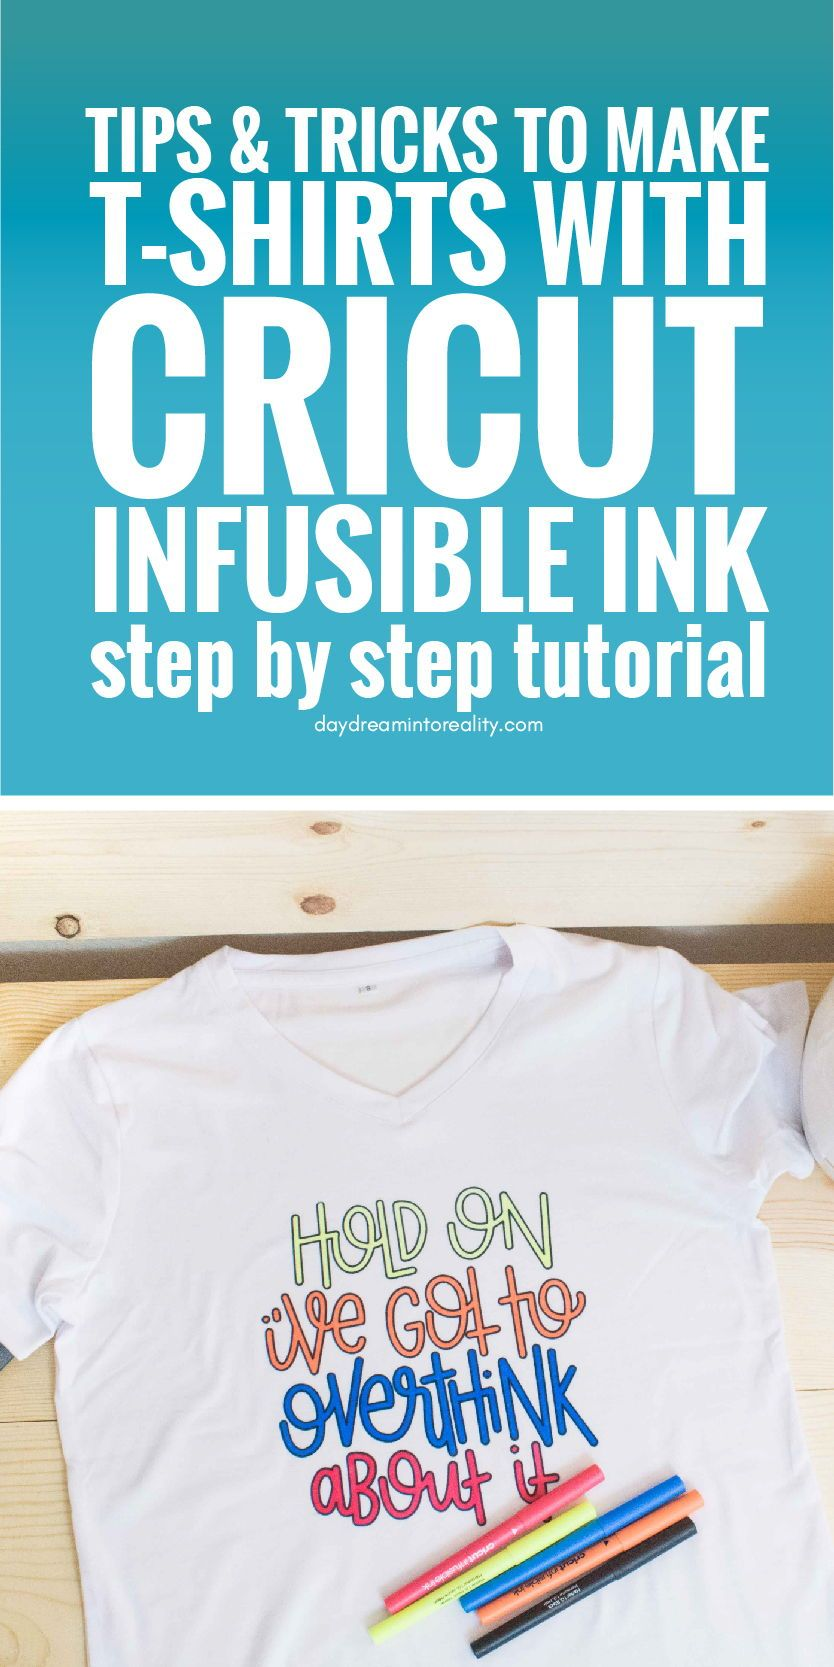 12+ Infusible ink shirt designs ideas in 2021